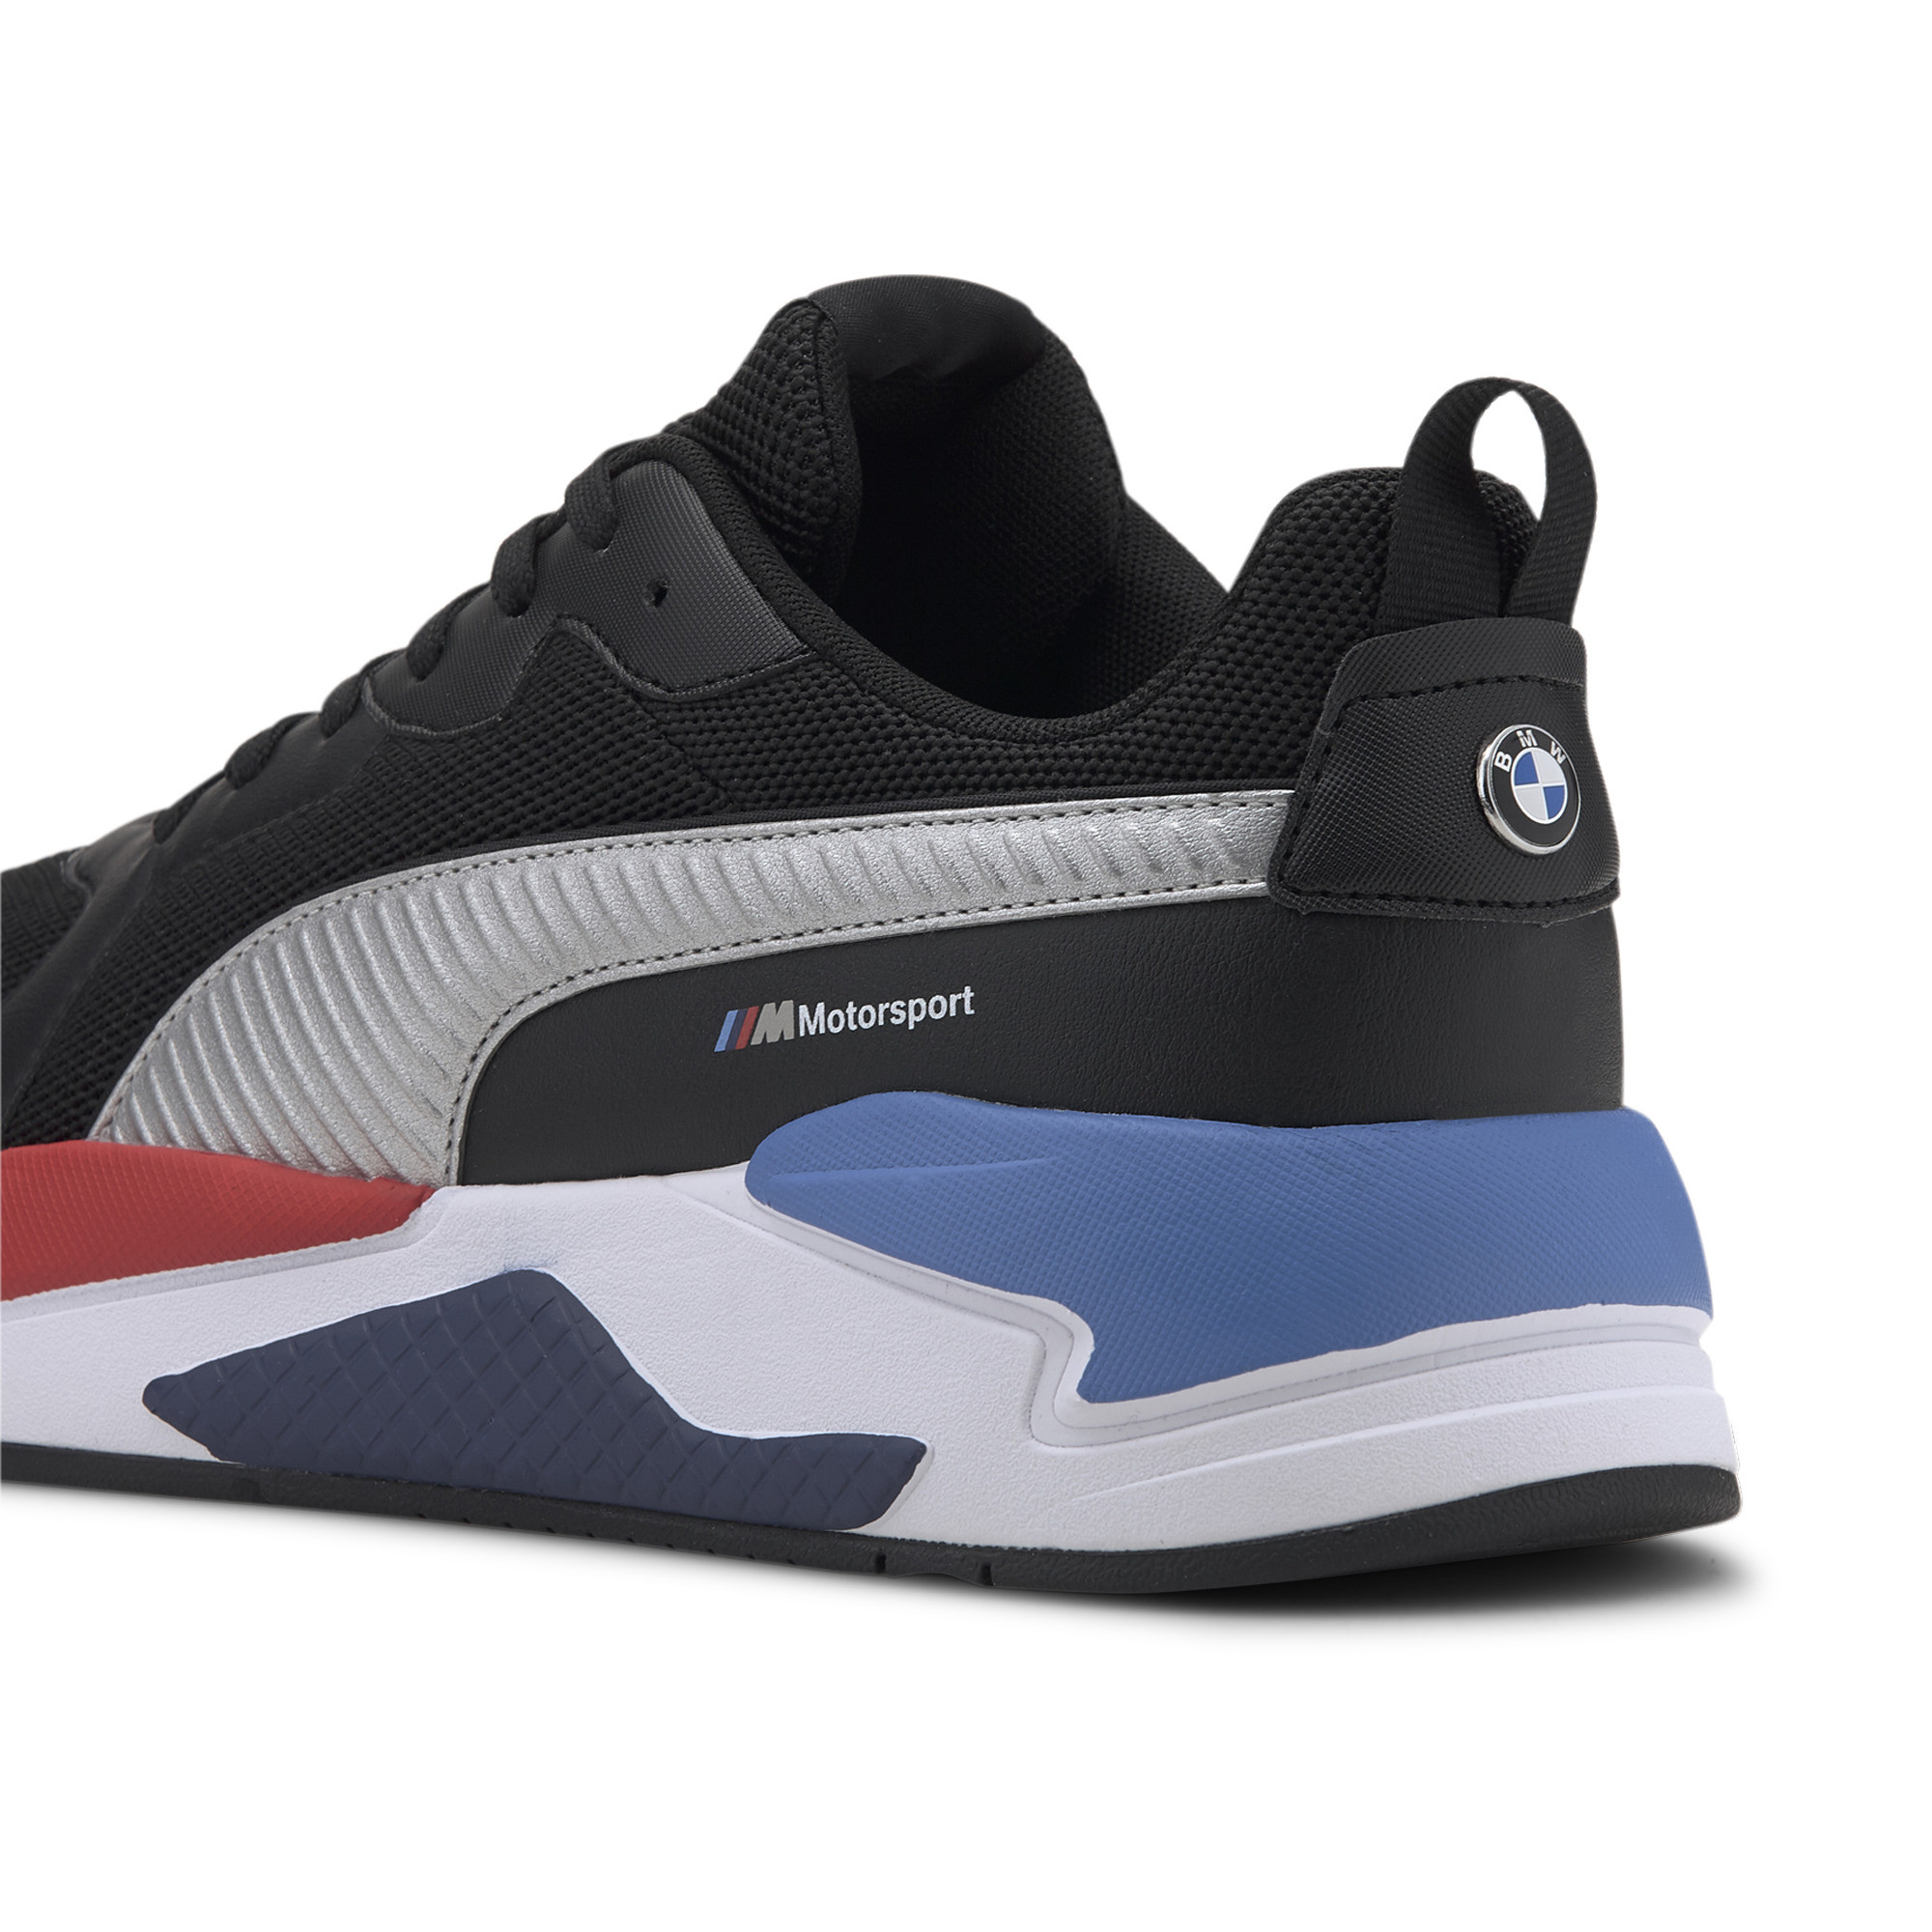 PUMA-Men-039-s-BMW-M-Motorsport-X-RAY-Sneakers thumbnail 9